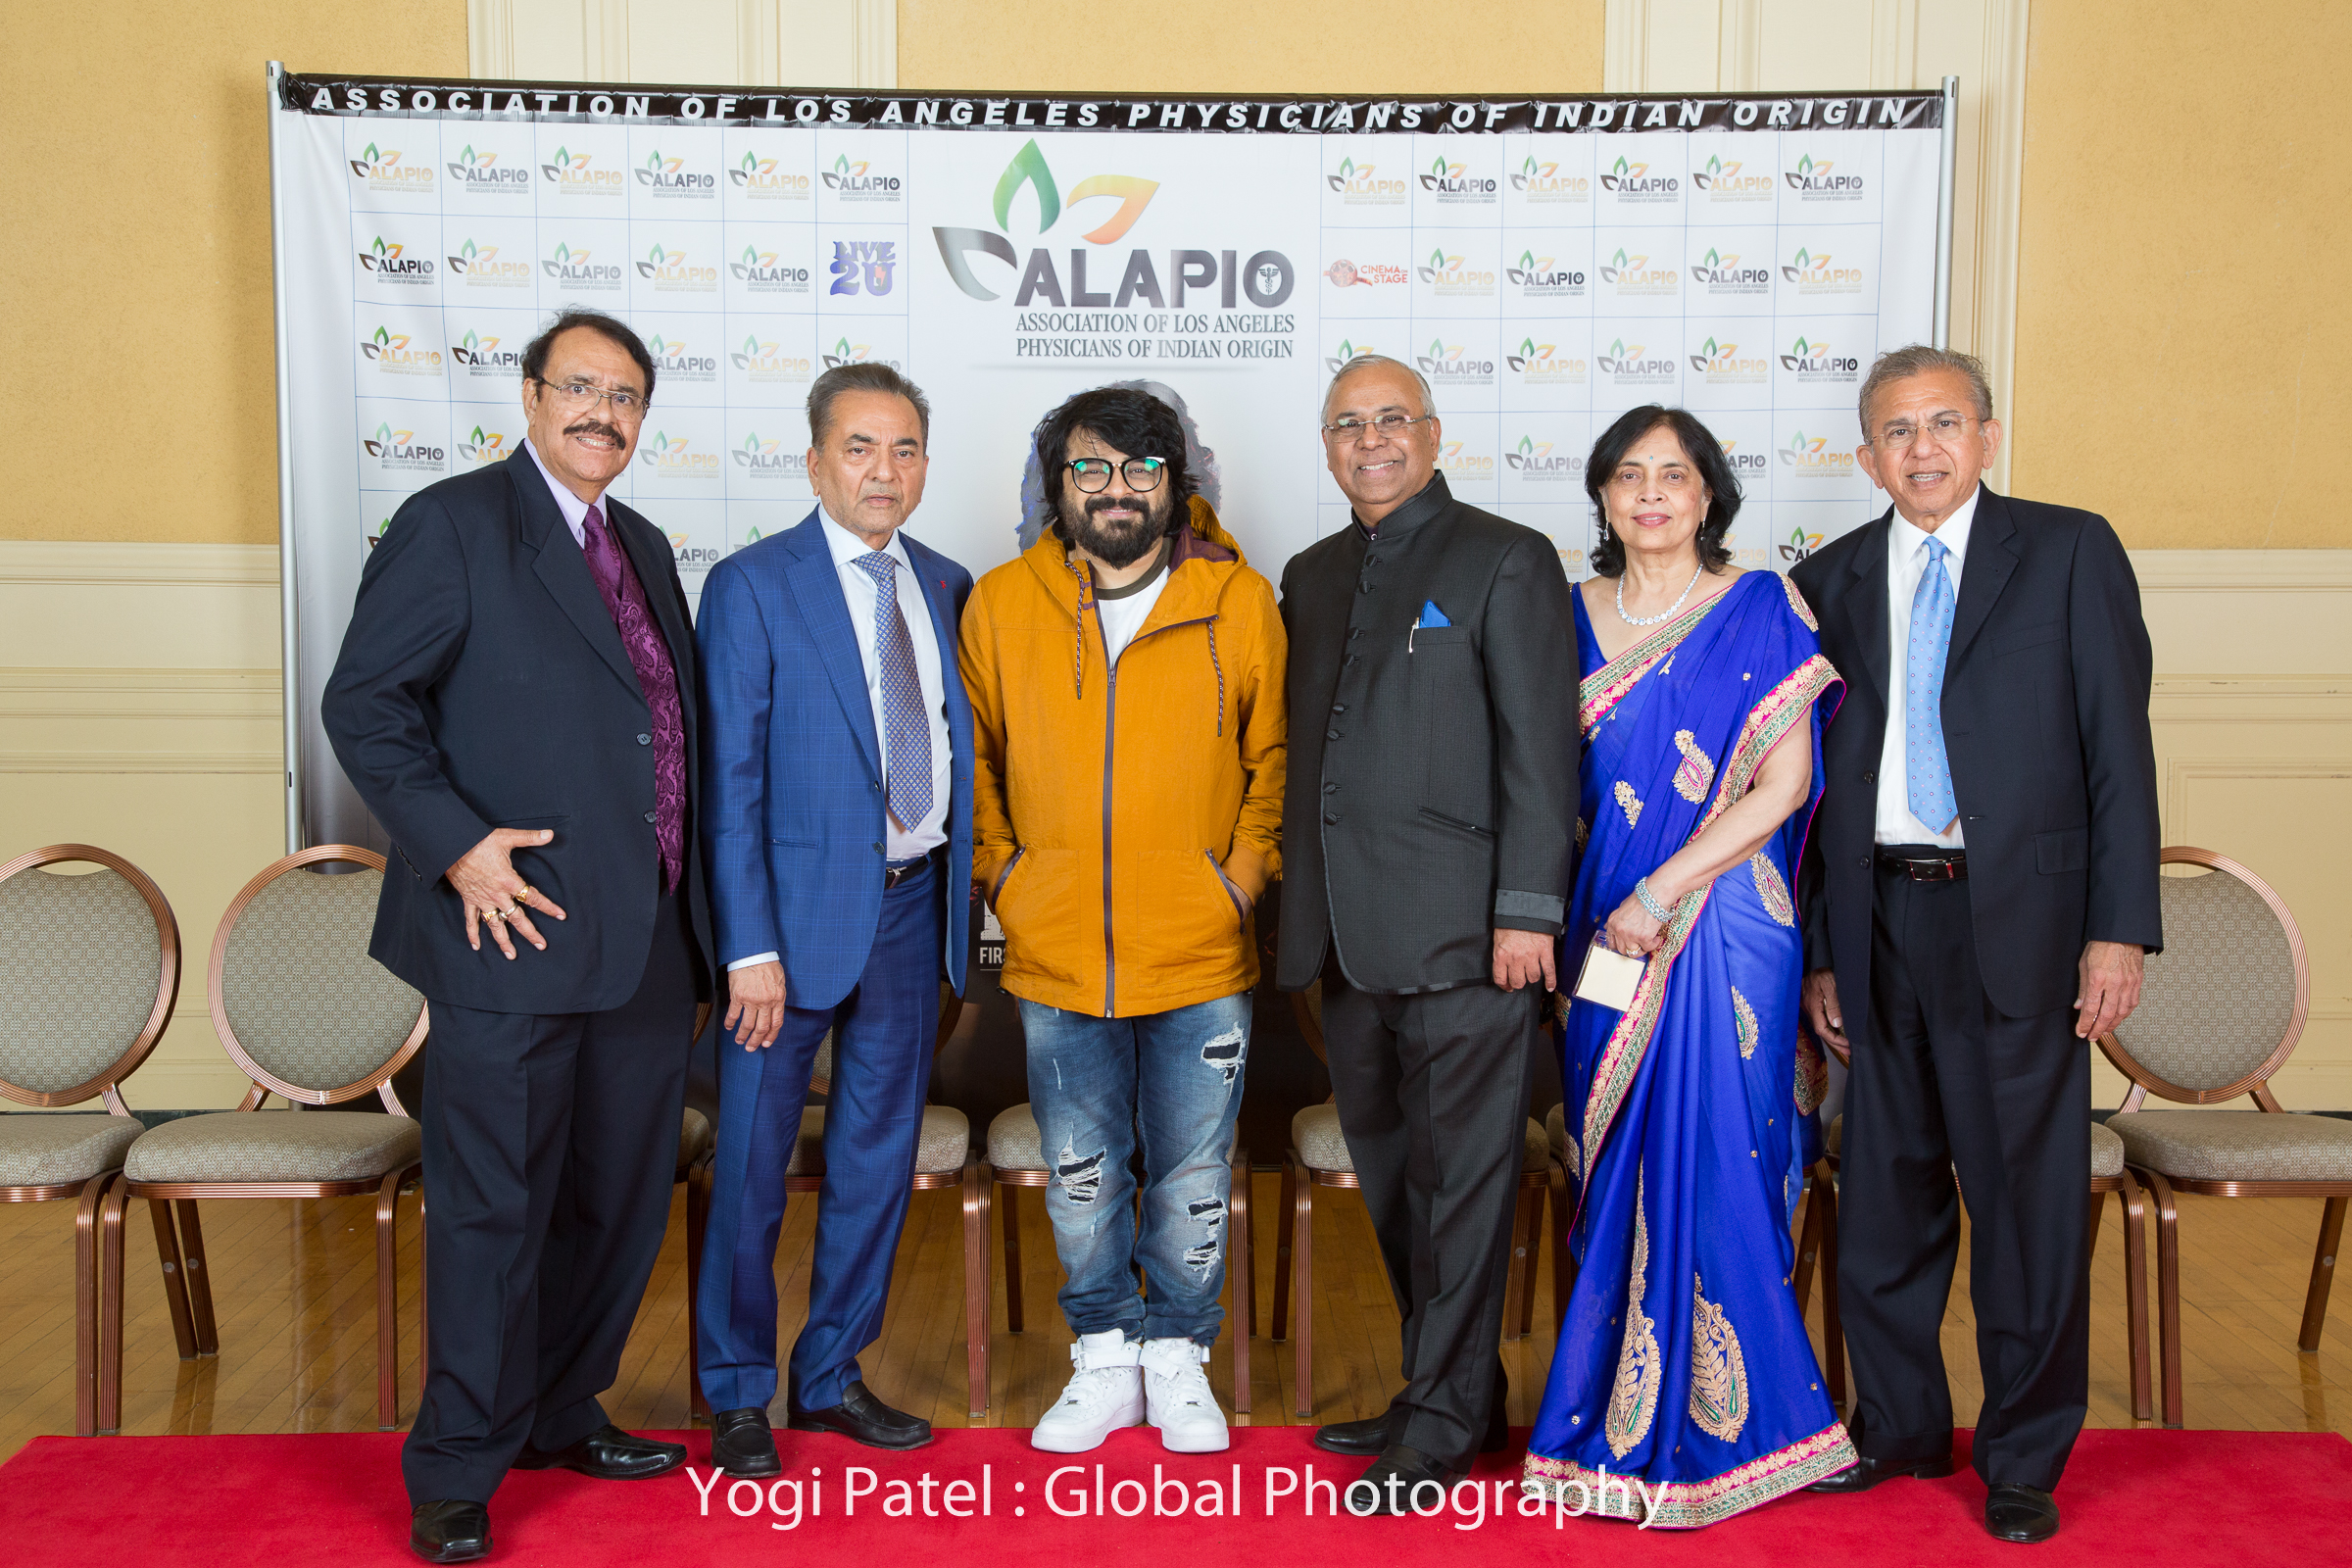 Yogi Patel - Global Photography0X2B2610.jpg